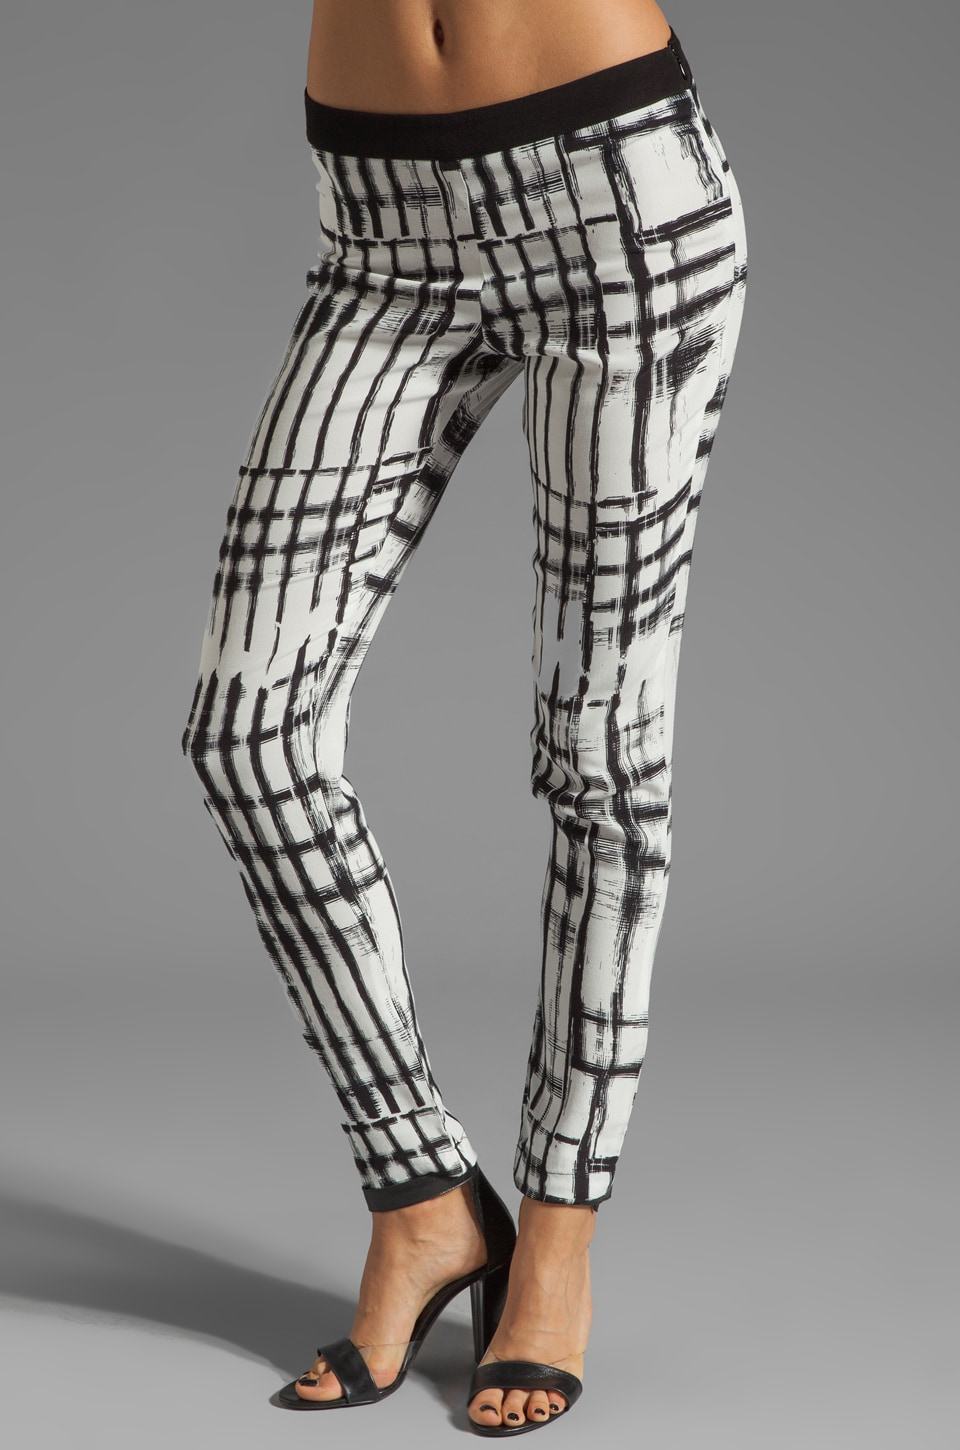 SAM&LAVI Lora Pant in Techno Plaid